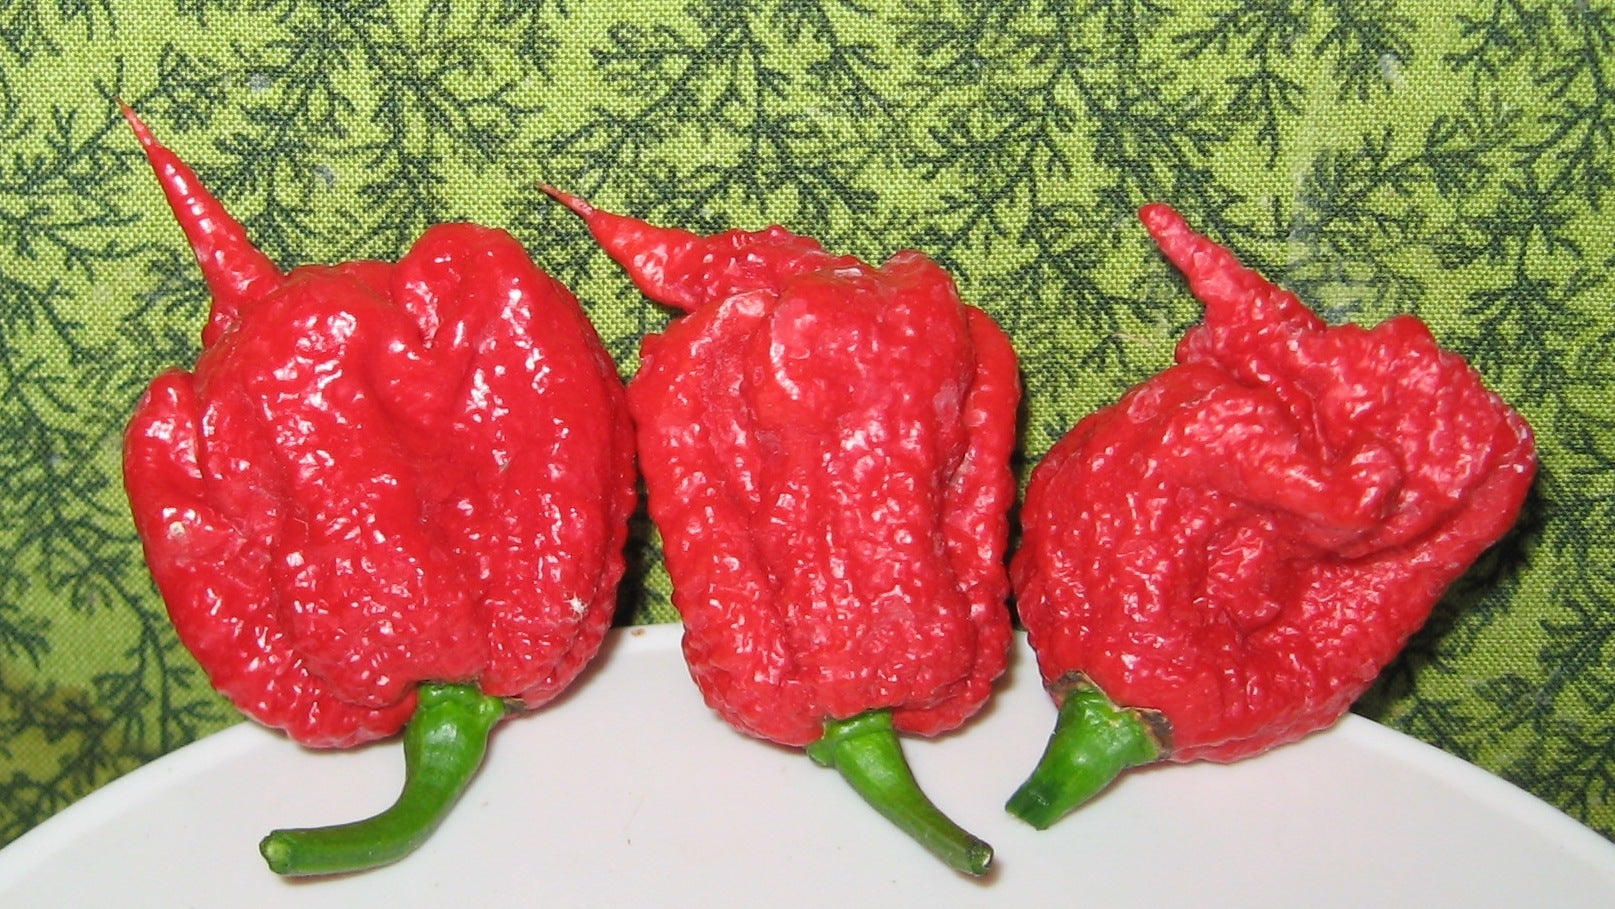 World's Hottest Chilli Sends Man To The ER With Thunderclap Headaches